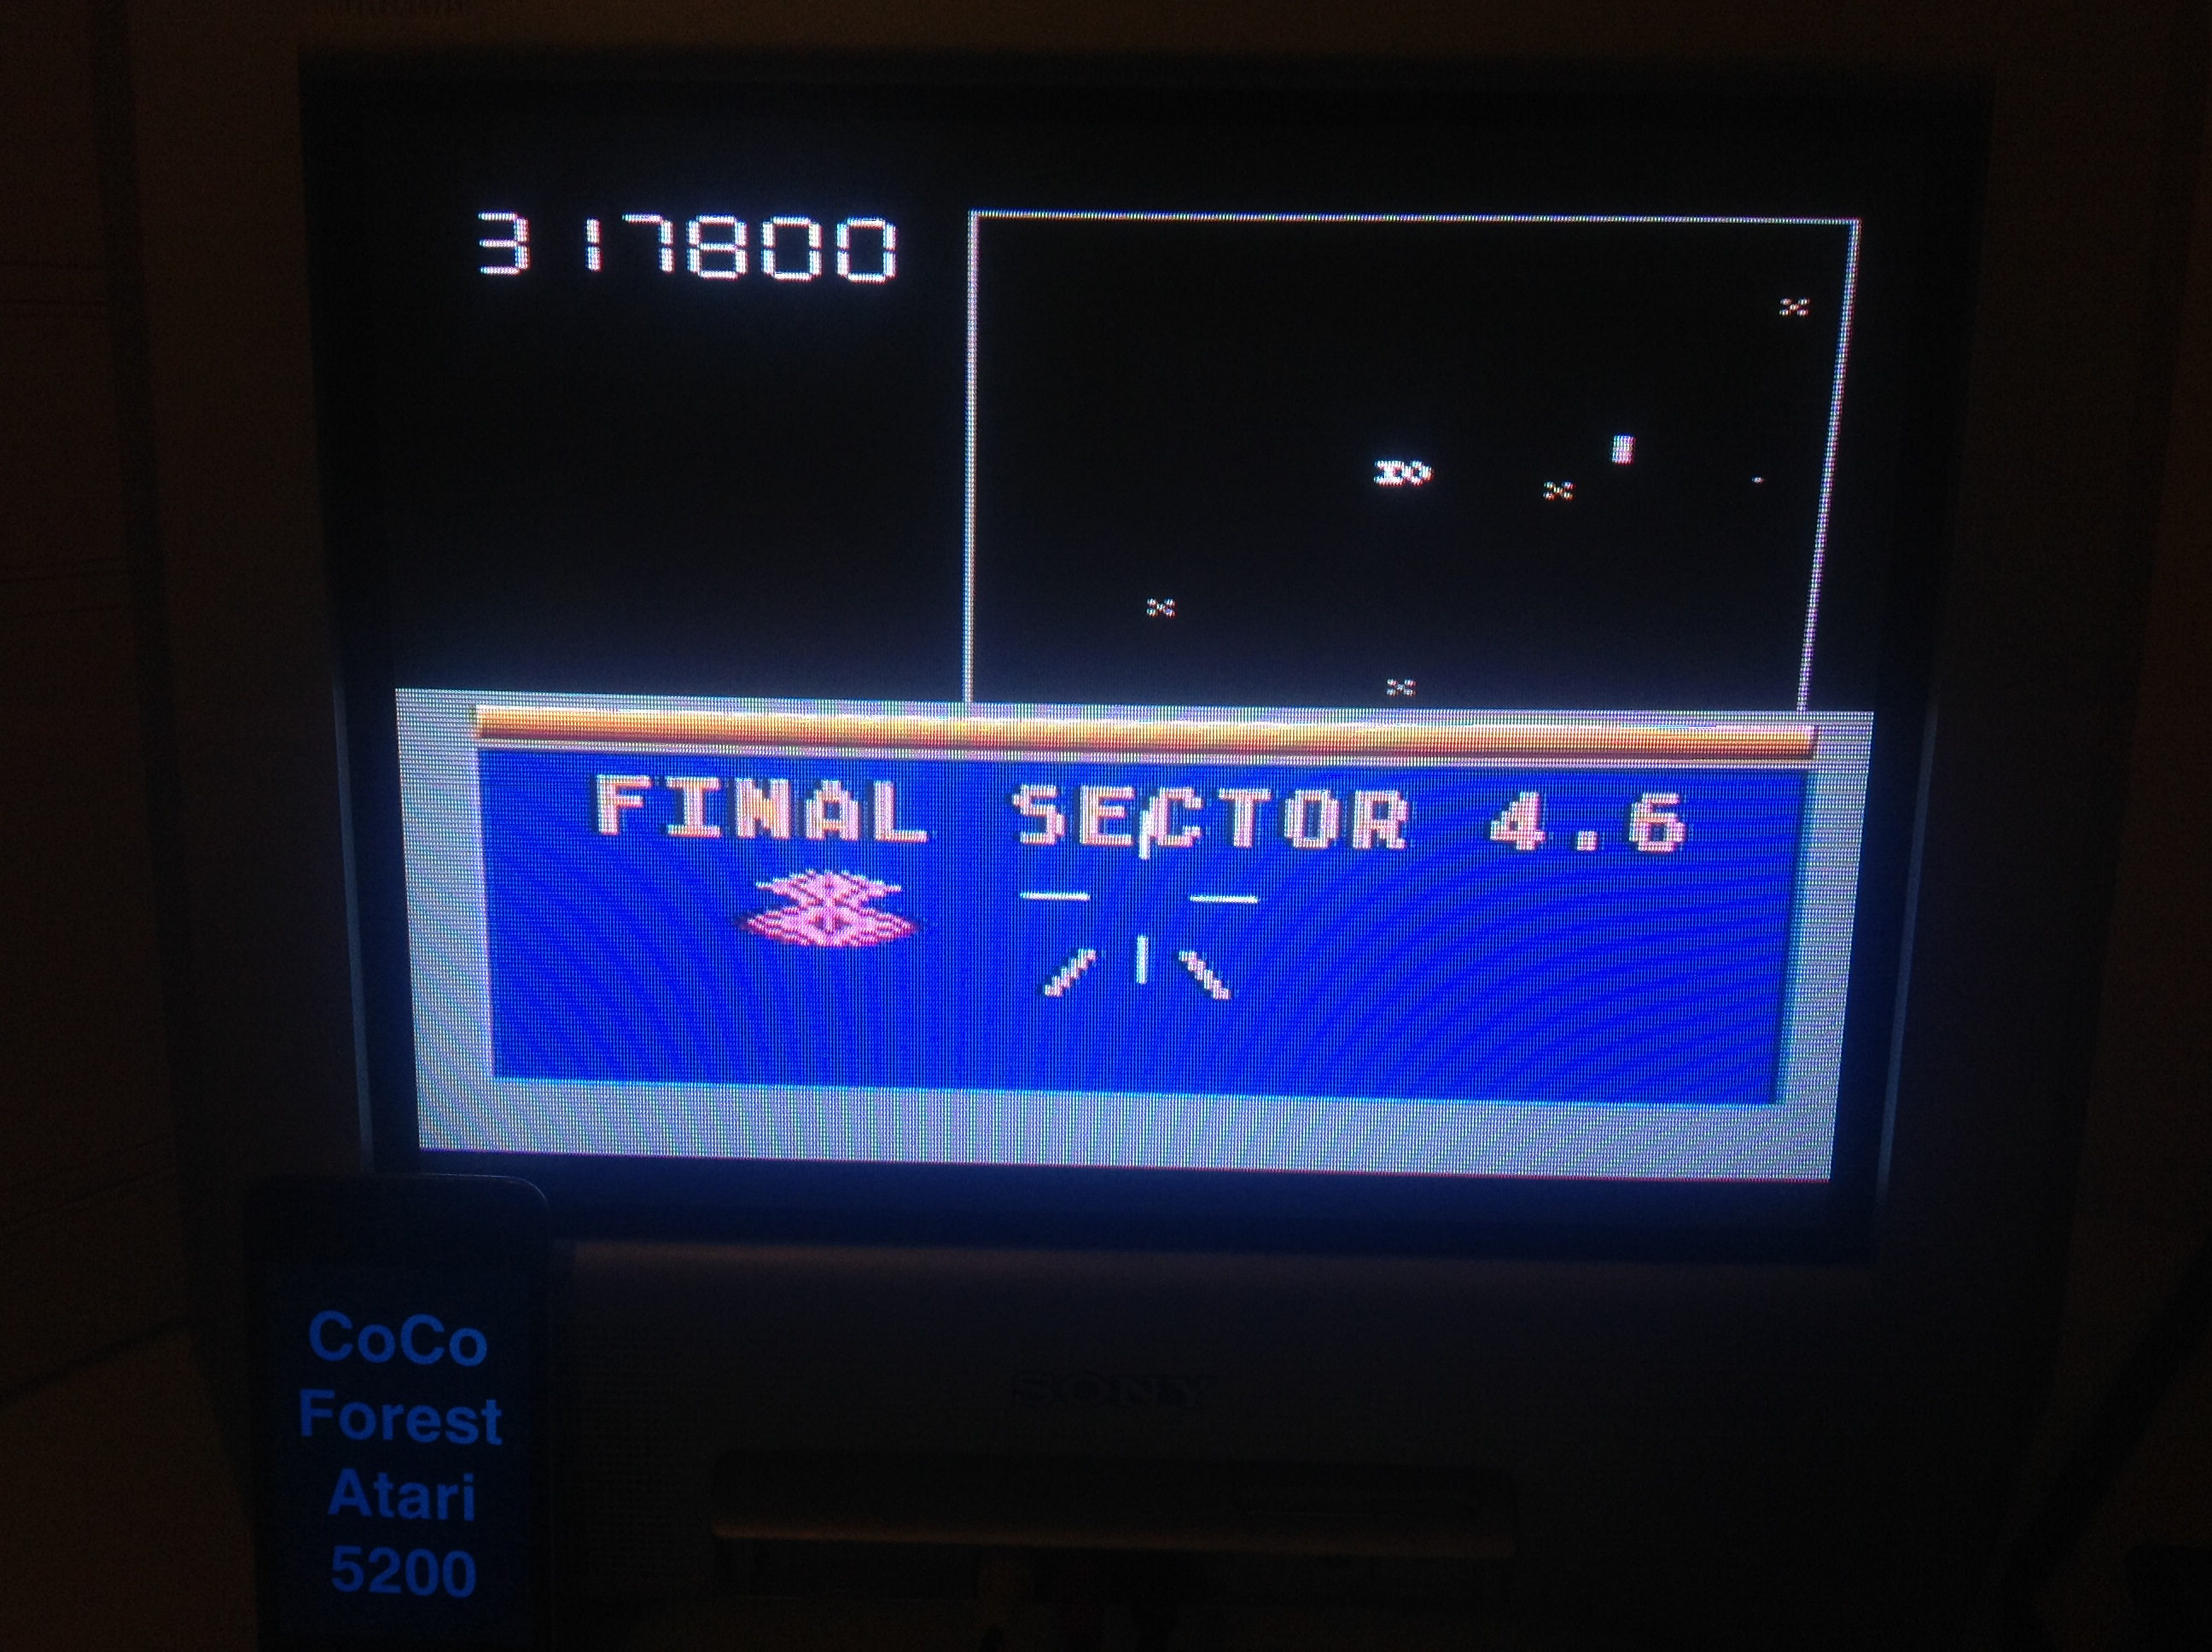 CoCoForest: Star Trek (Atari 5200) 317,800 points on 2015-11-19 11:26:46